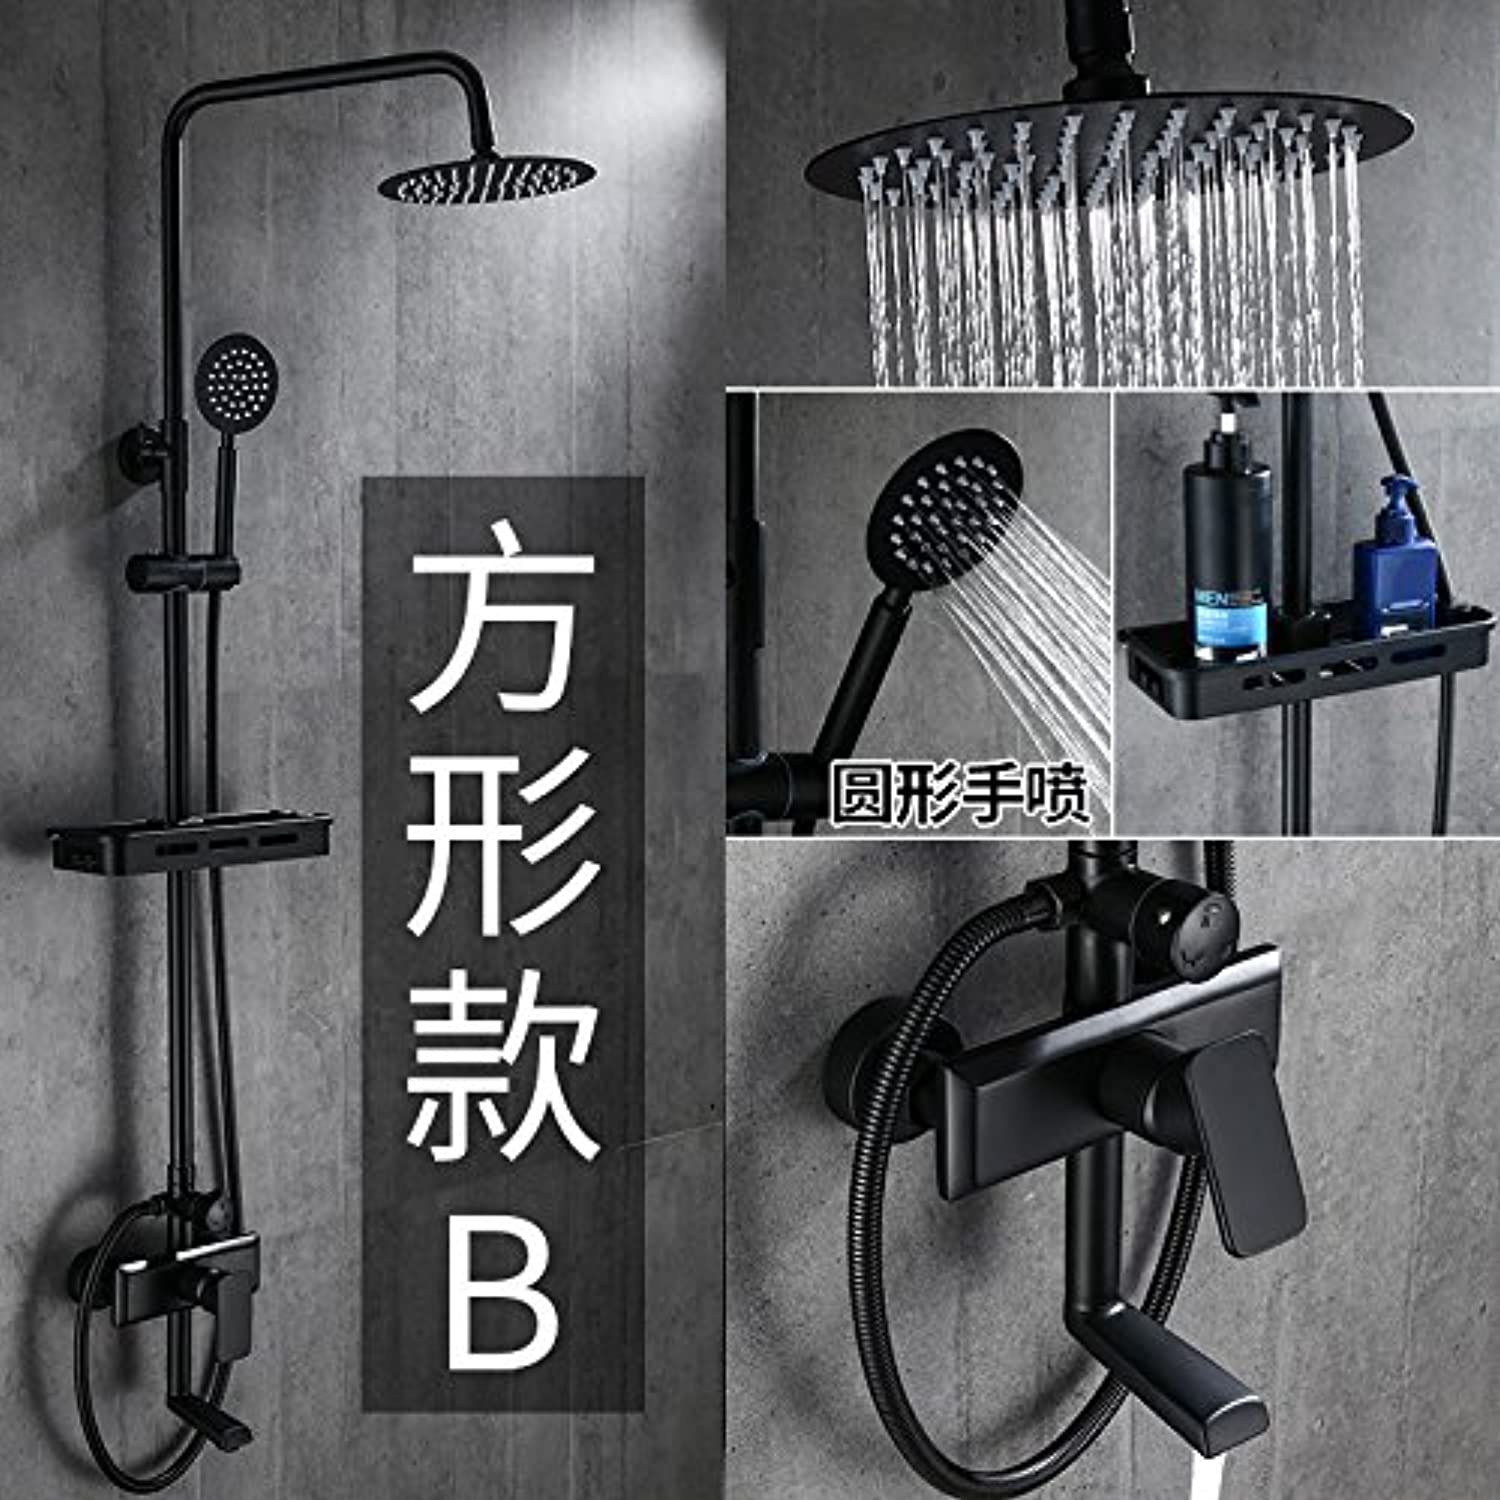 Gyps Faucet Basin Mixer Tap Waterfall Faucet Antique Bathroom Mixer Bar Mixer Shower Set Tap antique bathroom faucet Black matte booster shower kit antique showers full brass faucets can lift square B